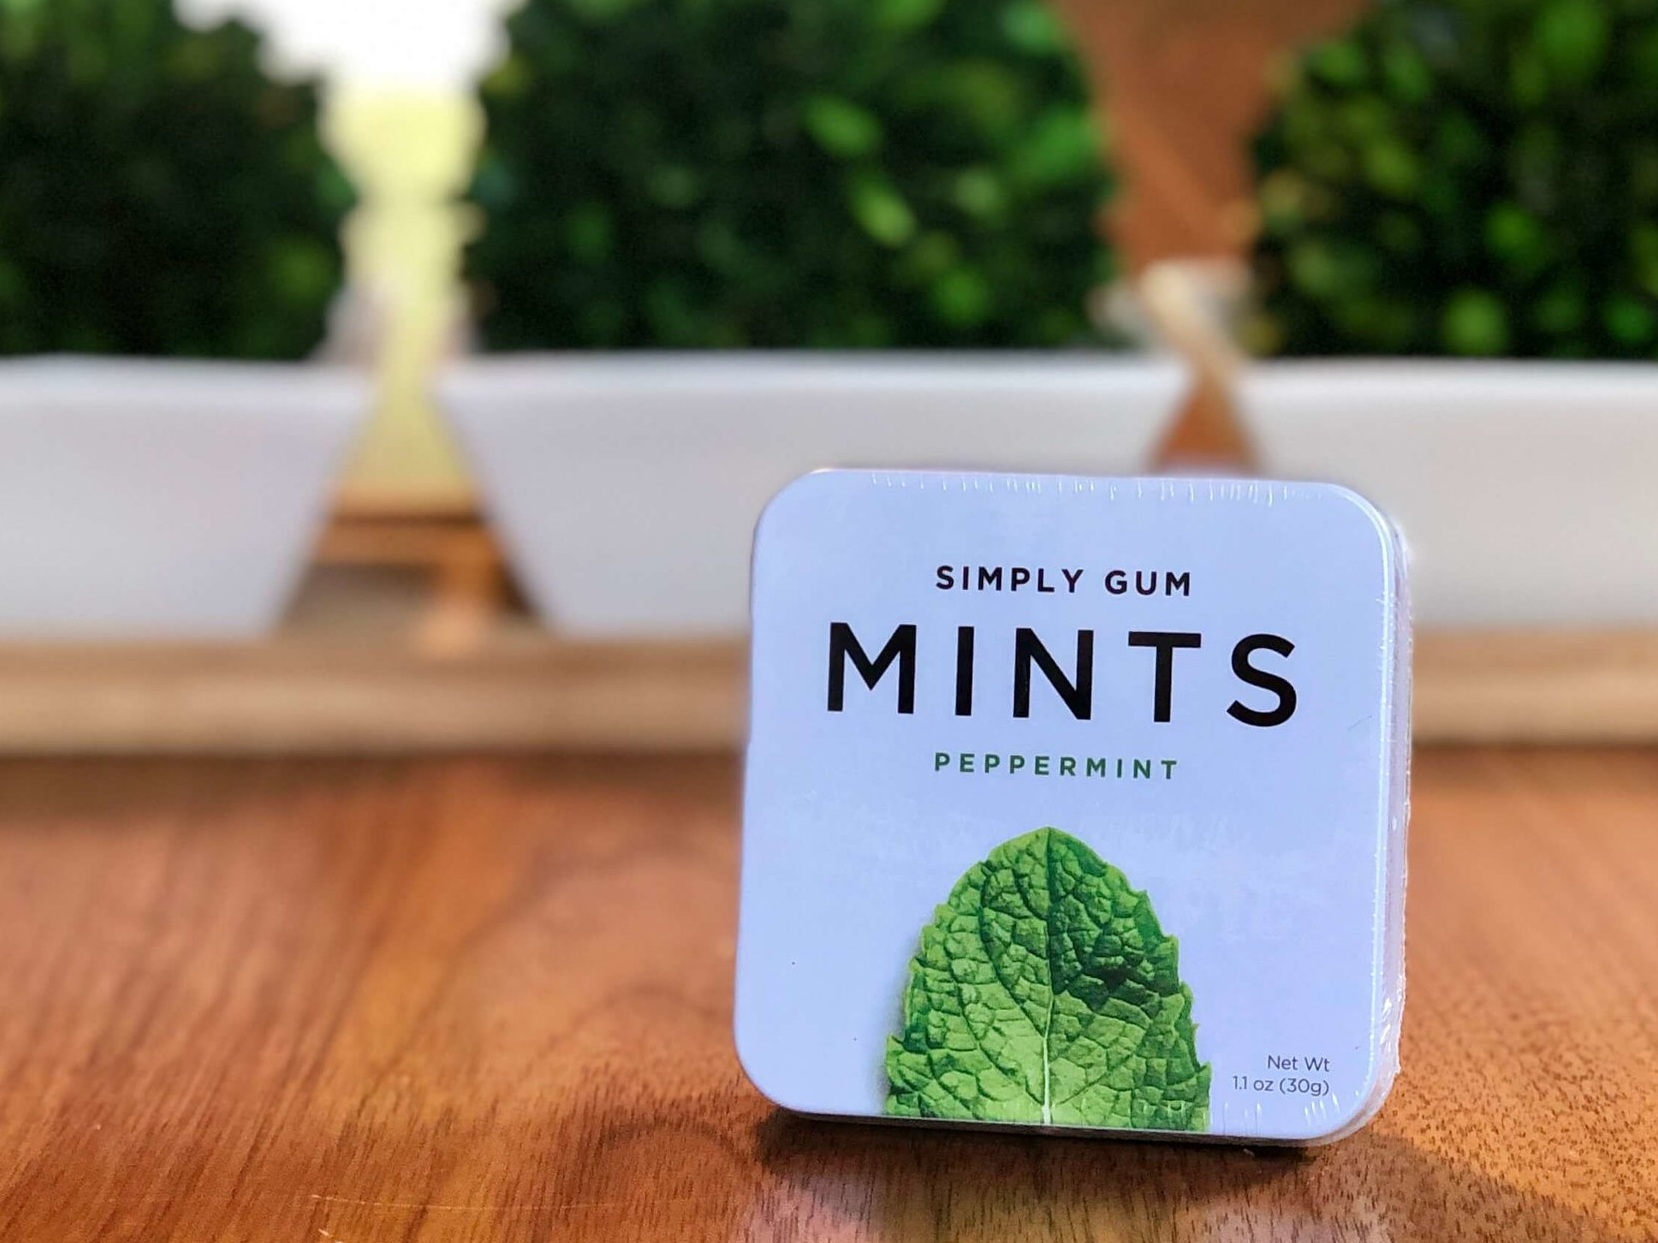 Mints - PeppermintOnly natural ingredients. Vegan, gluten free, and Kosher certified. No artificial flavors, preservatives, or synthetics.Made in NY.